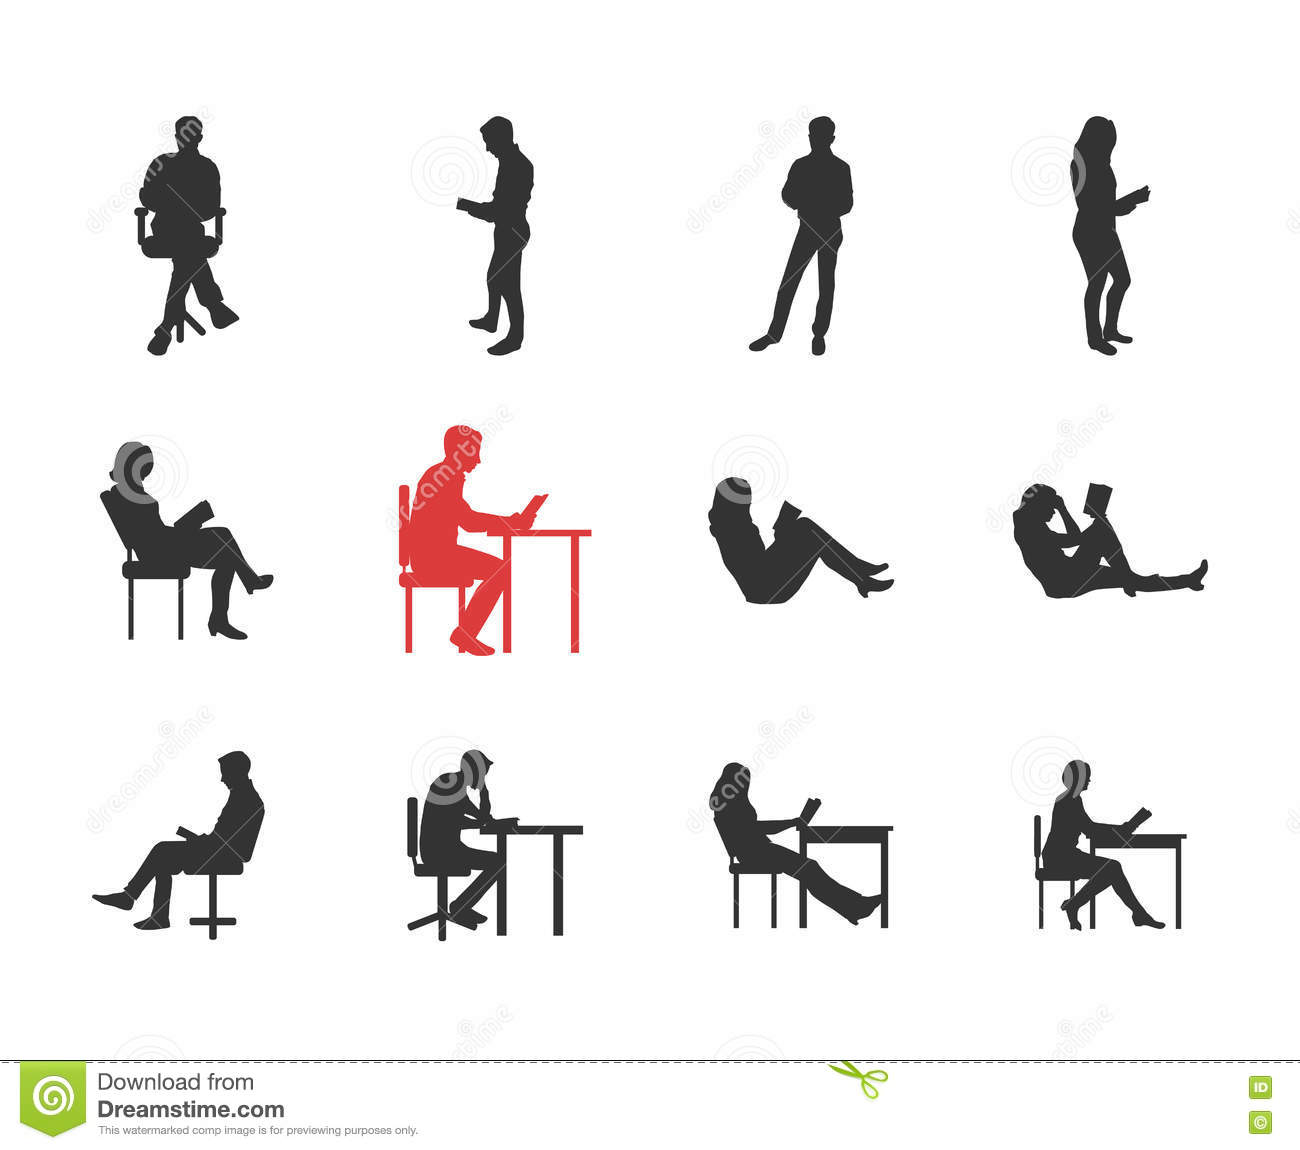 How To Draw A Halloween Devil  Halloween Devil besides Stutter Steps moreover How To Draw The Pillsbury Doughboy besides Work Work Work Work Work Out moreover Stock Illustration People Male Female Silhouettes Different Casual  mon Reading Poses Modern Vector Flat Design Icons Set Holding Book Image75484951. on legs silhouette